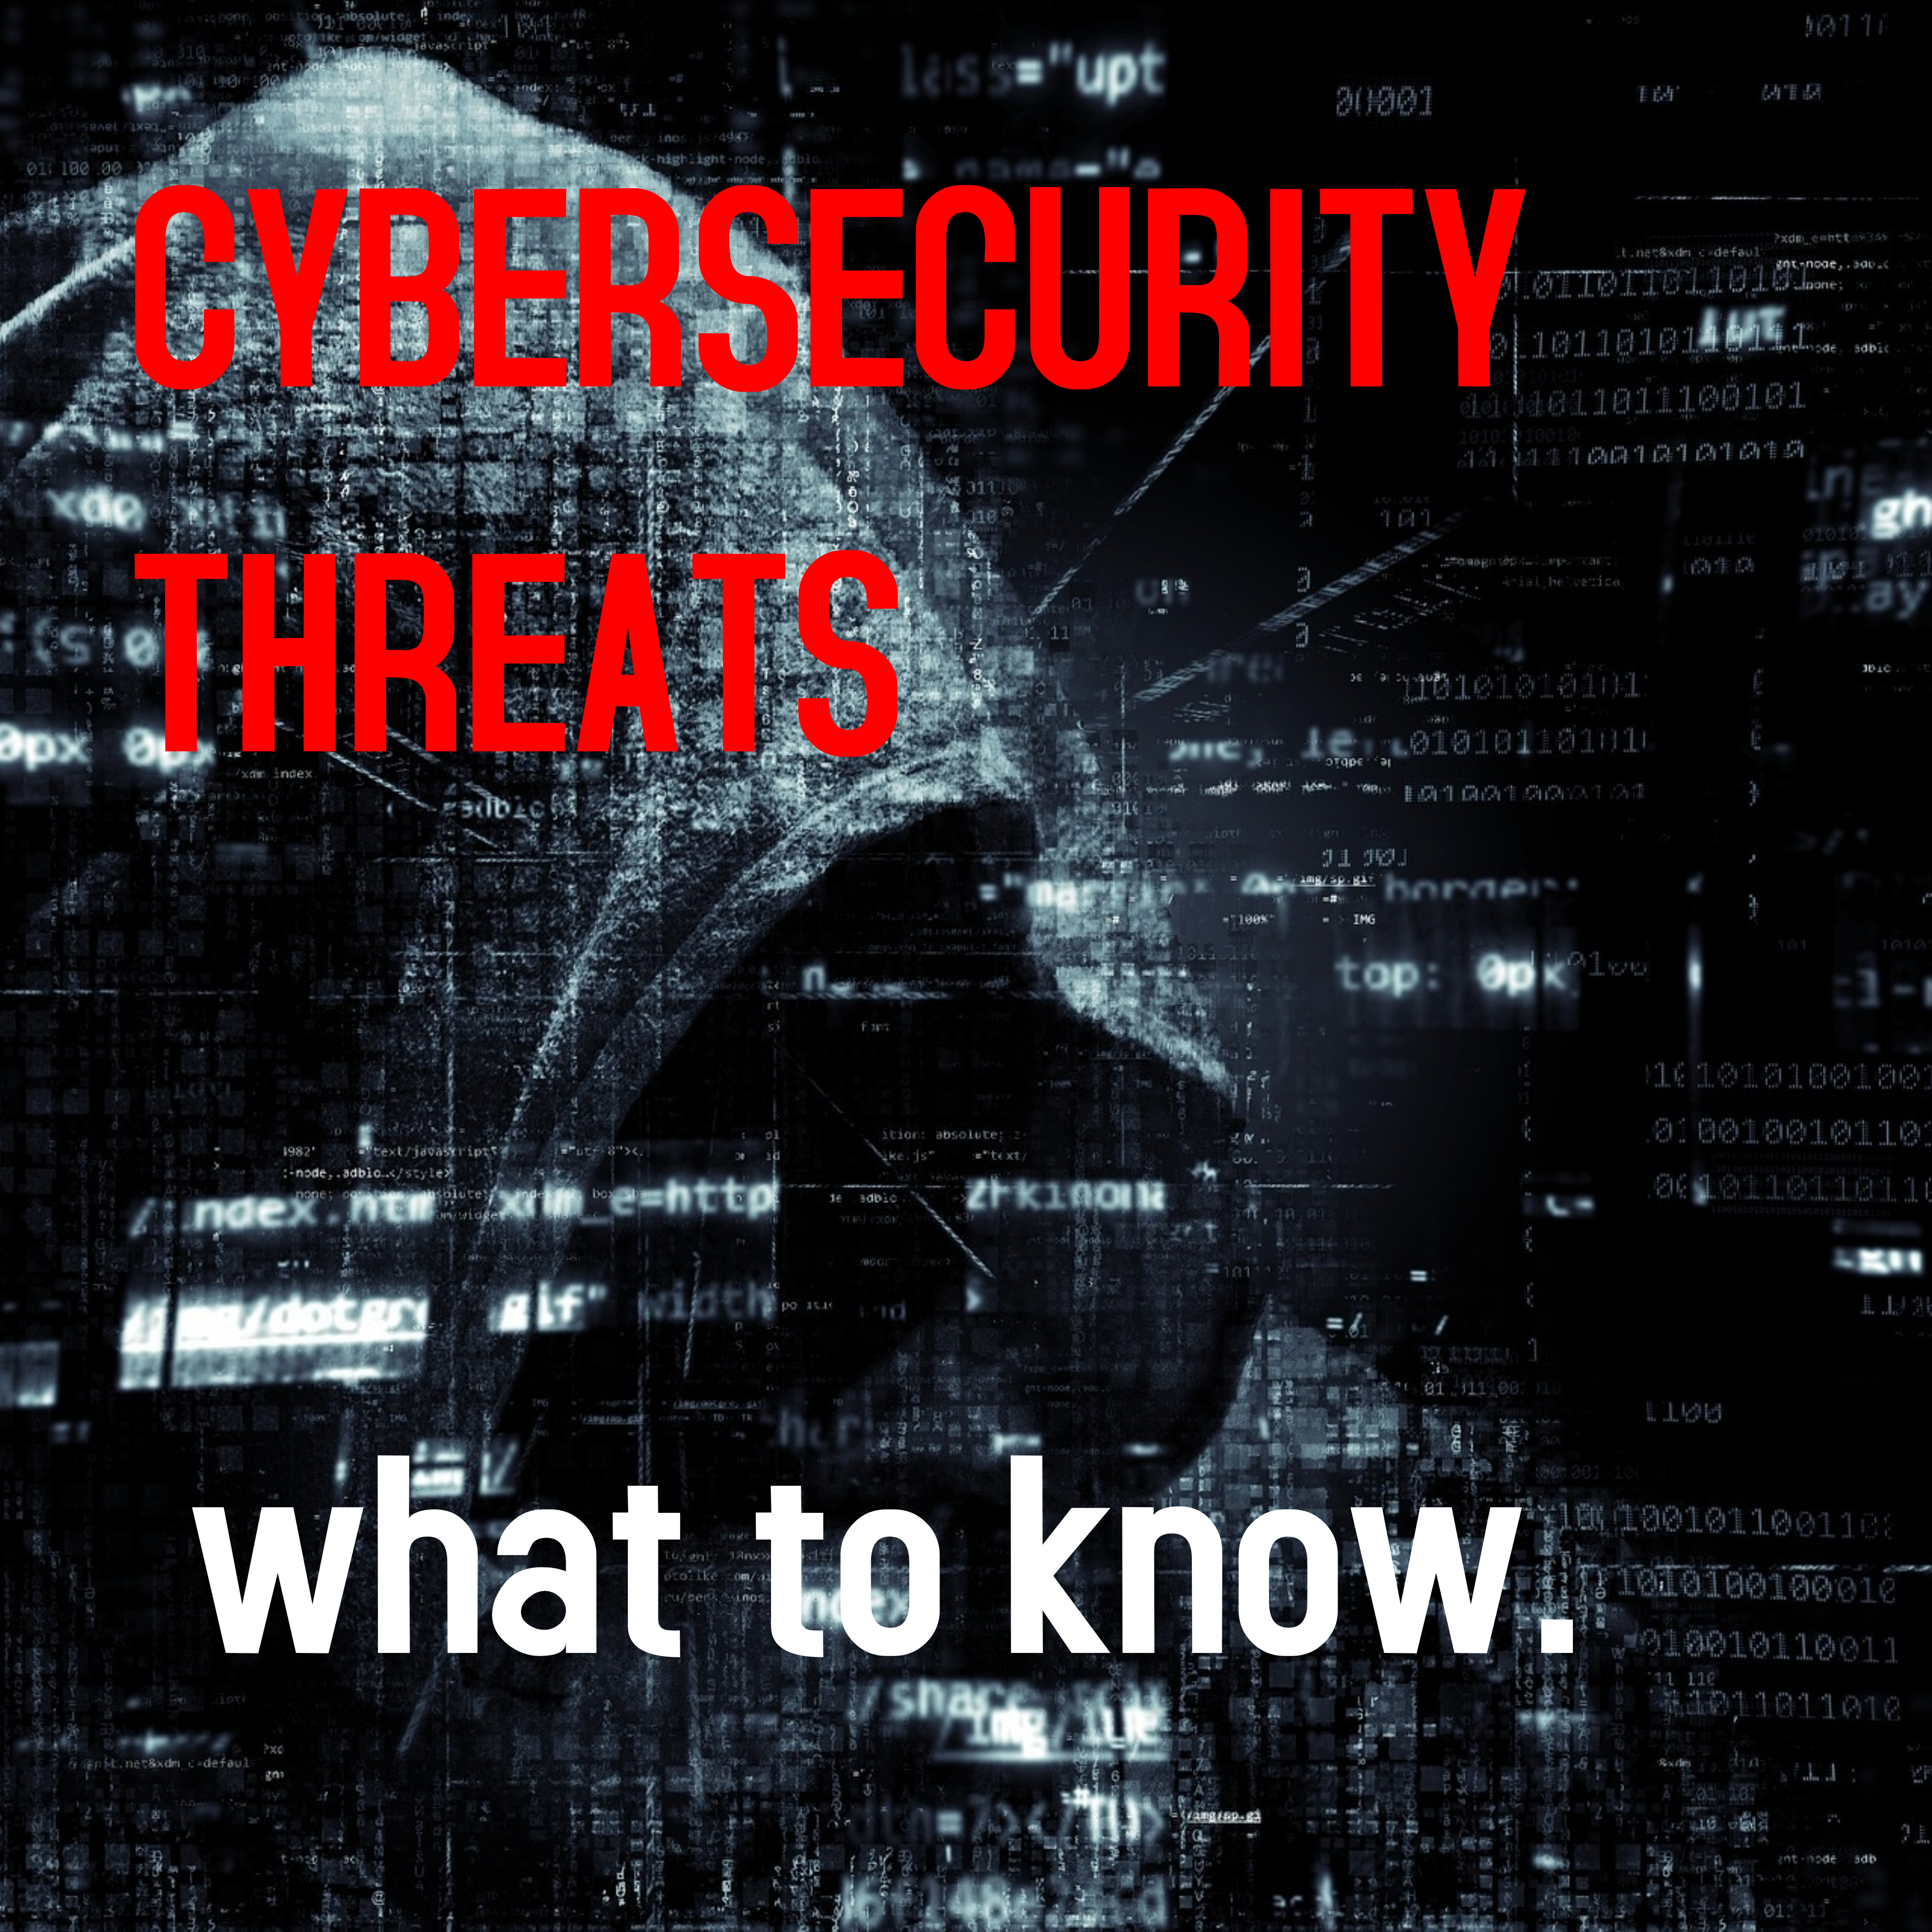 IT Expert, Philip Funks, Gives a detailed analysis and explanation on Cybersecurity threats